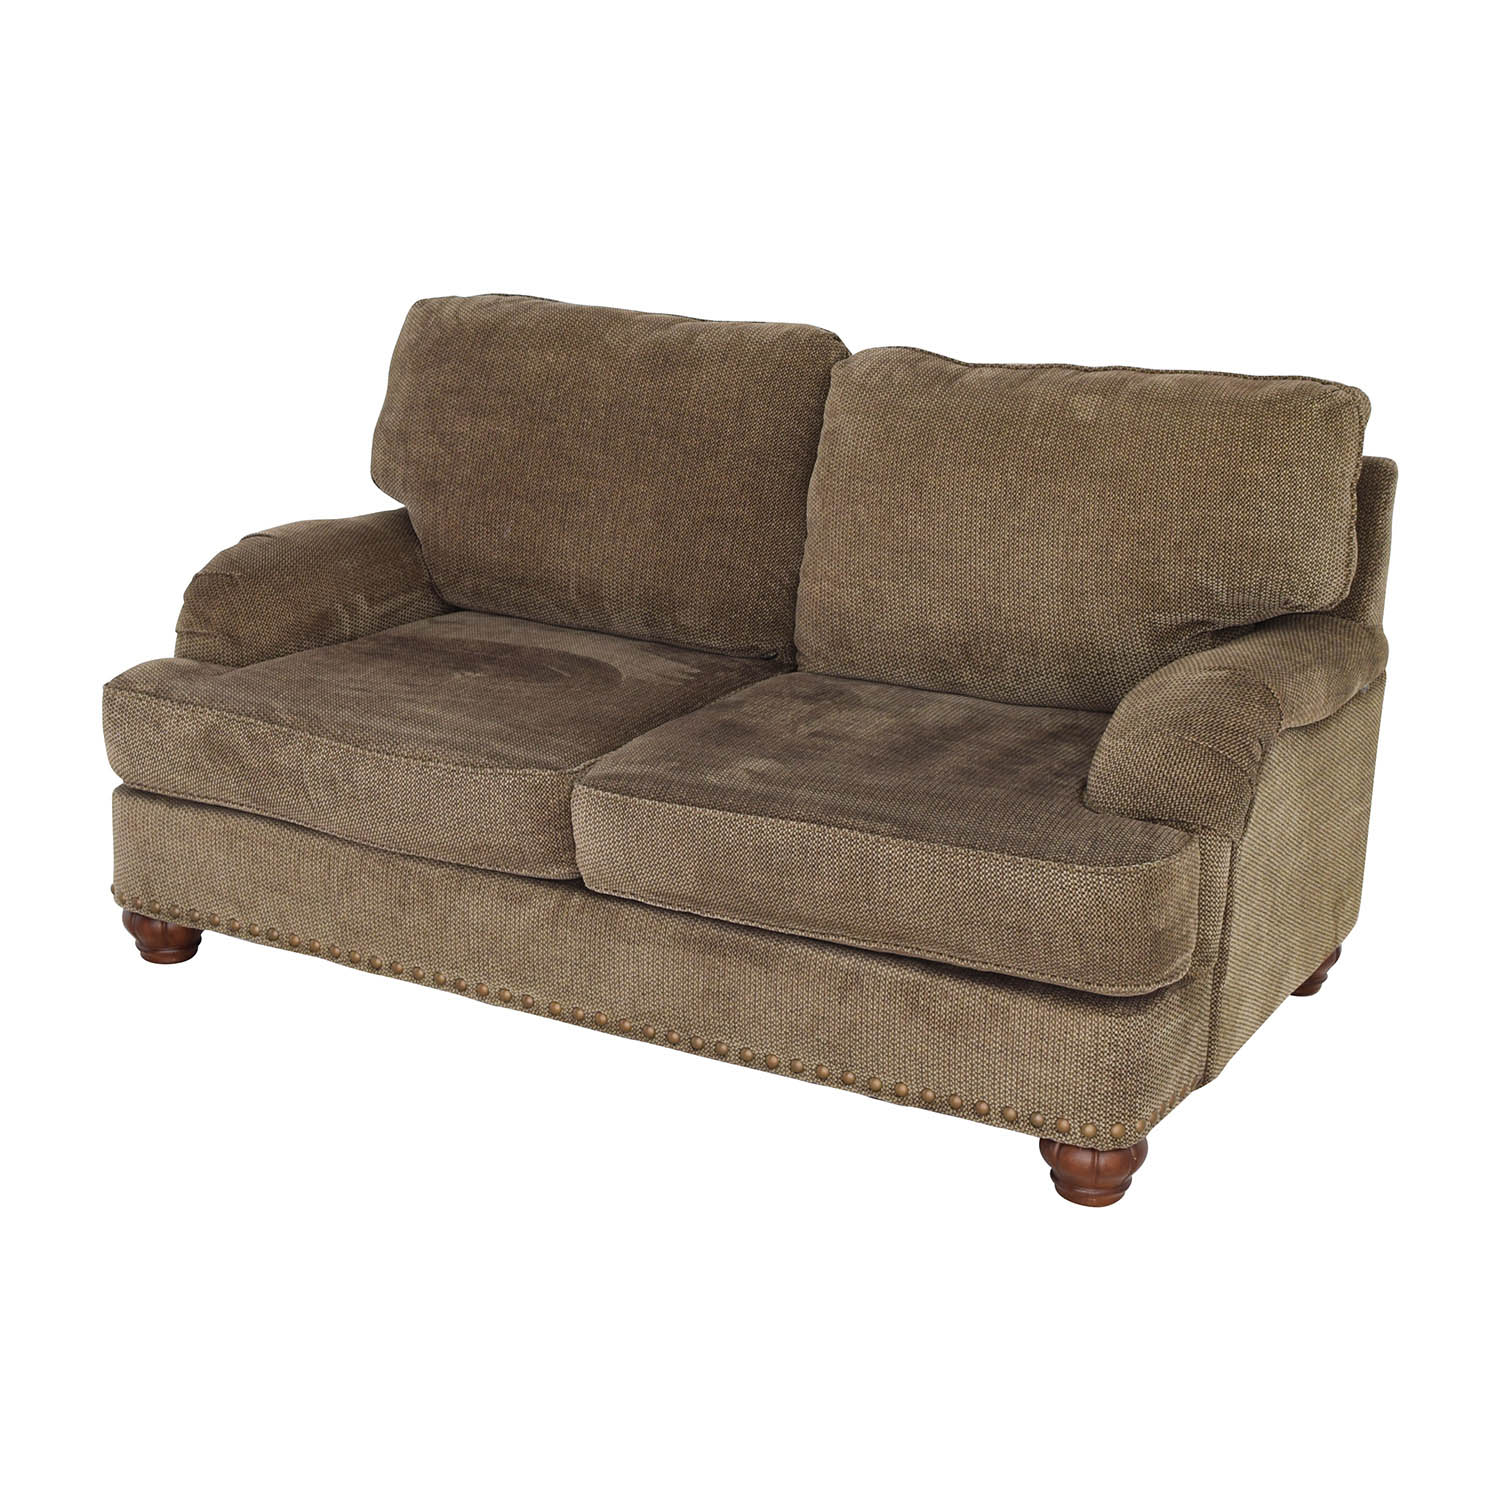 78 off ashley furniture ashley furniture barclay place for Couch and loveseat